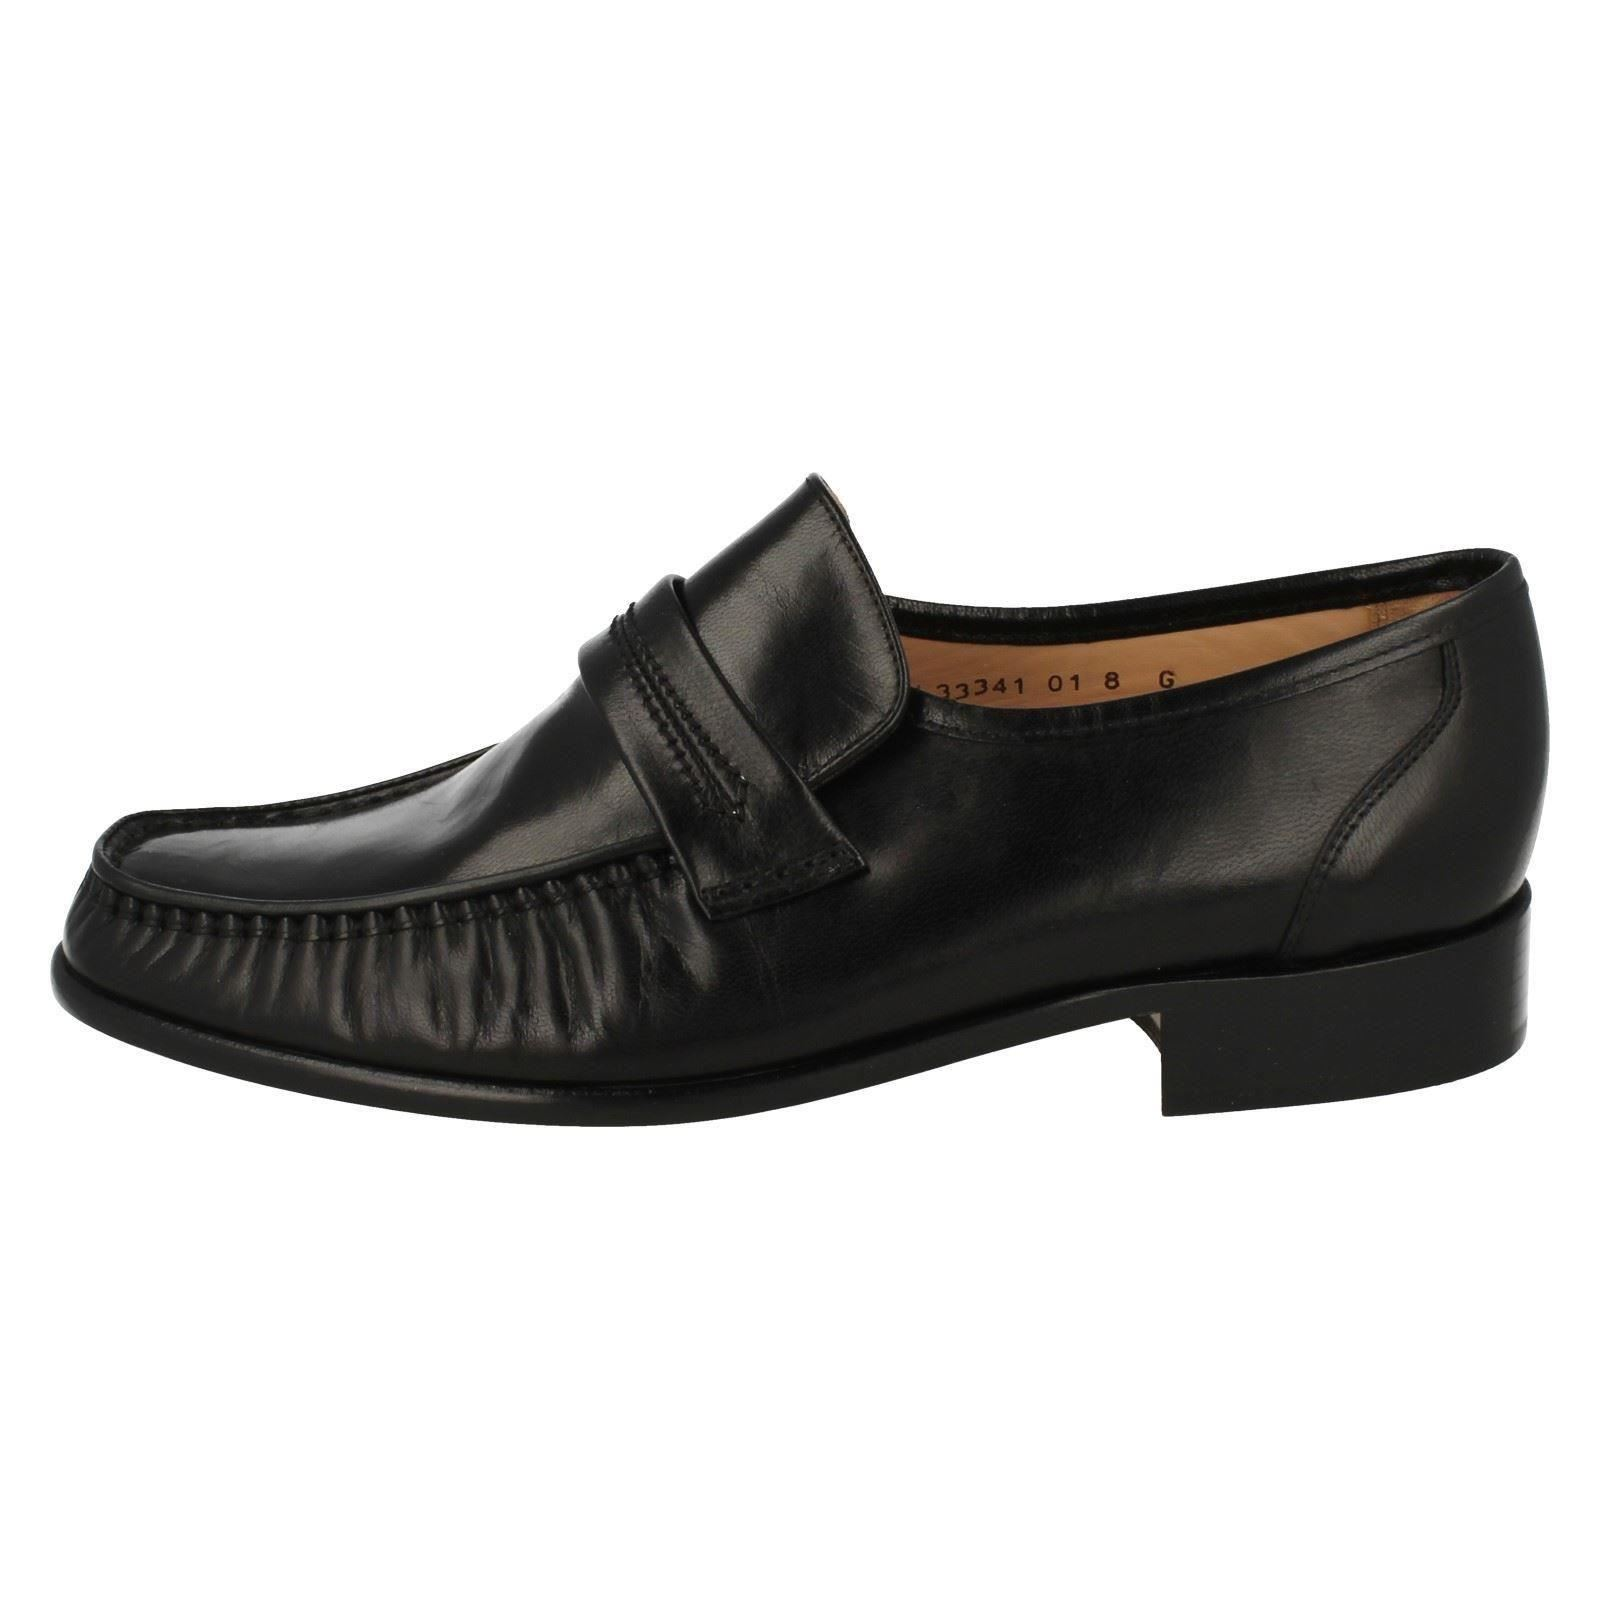 Mens Grenson Classic Moccasin Leather Slip On Shoes - Watford